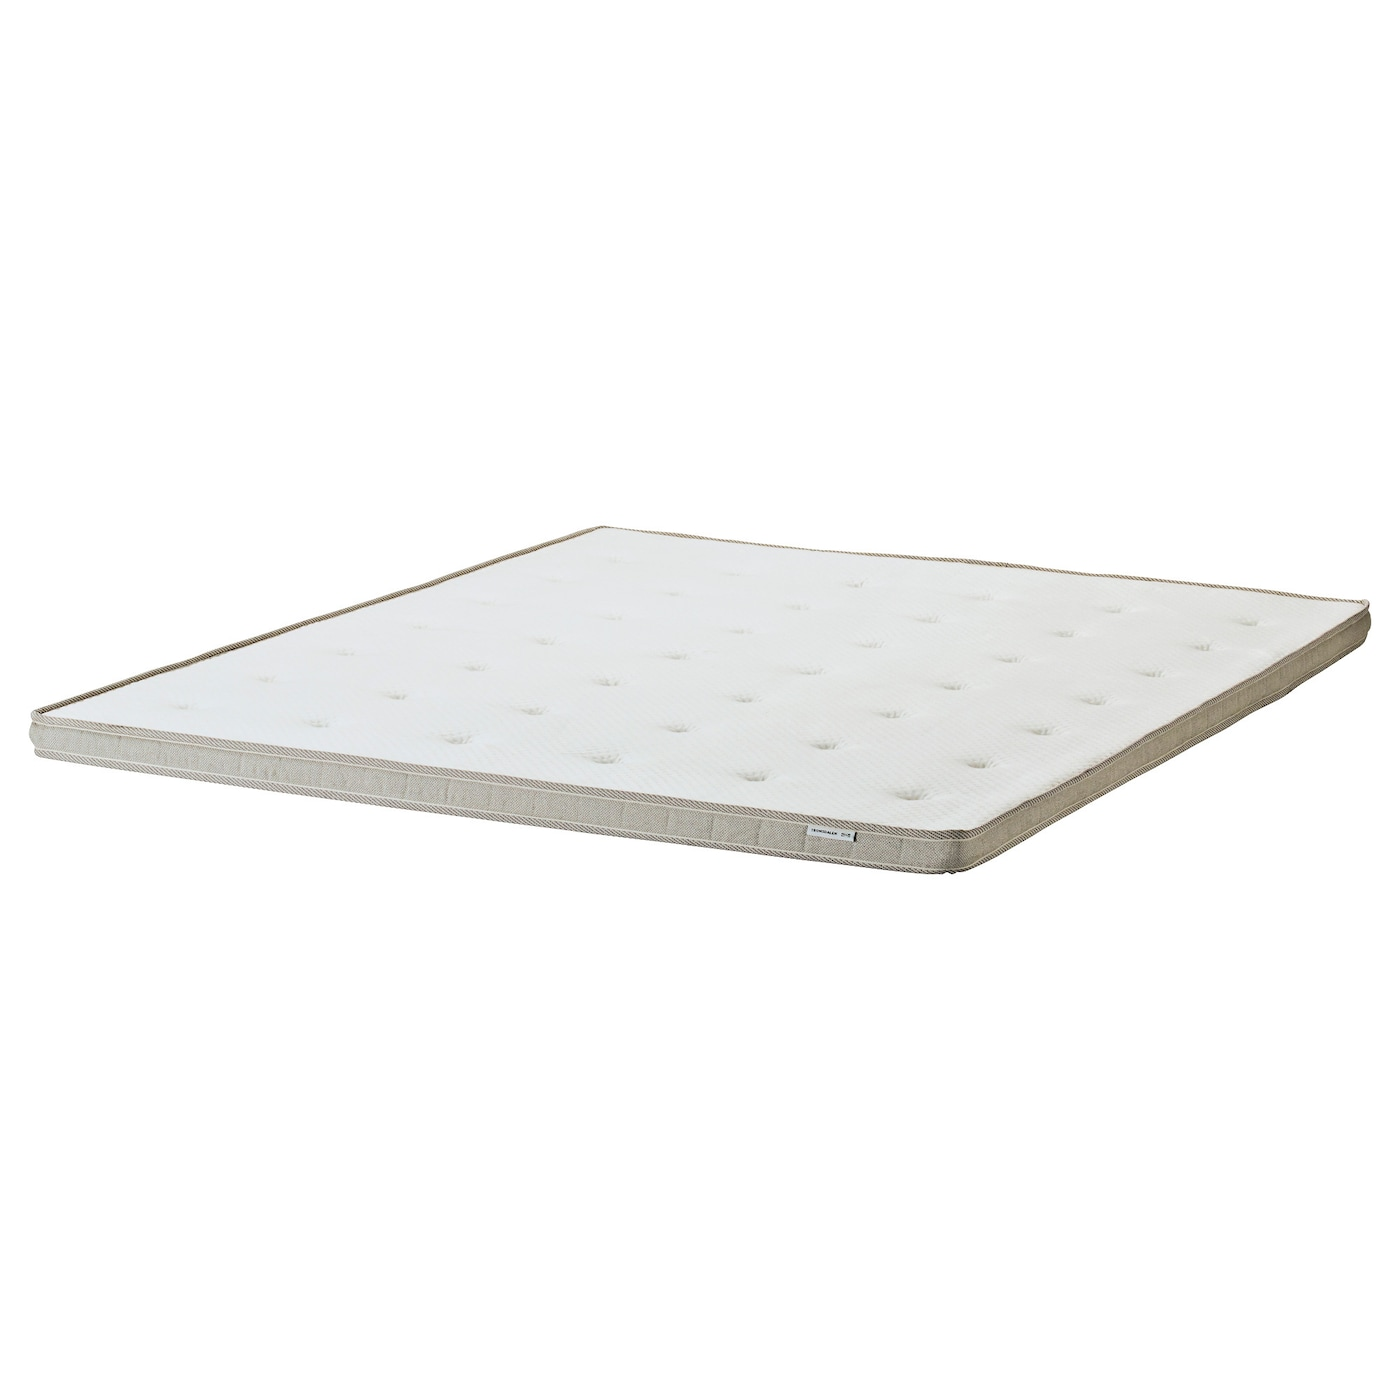 IKEA TROMSDALEN mattress topper Stretch fabric follows the contours of your body as you move in bed.